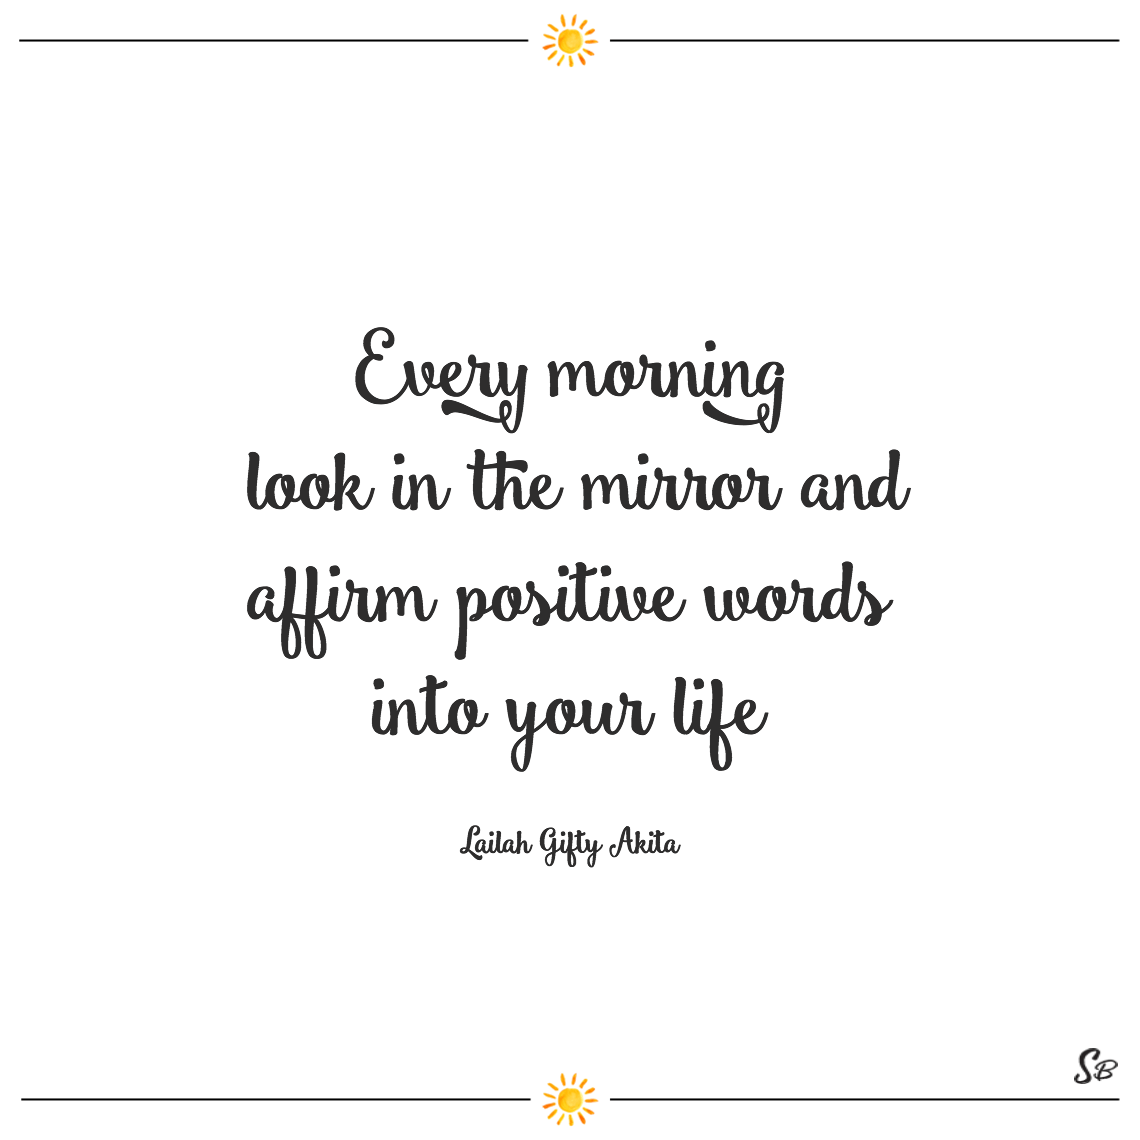 Profound Quotes About Life 40 Awesome Good Morning Quotes To Jump Start Your Day  Spirit Button